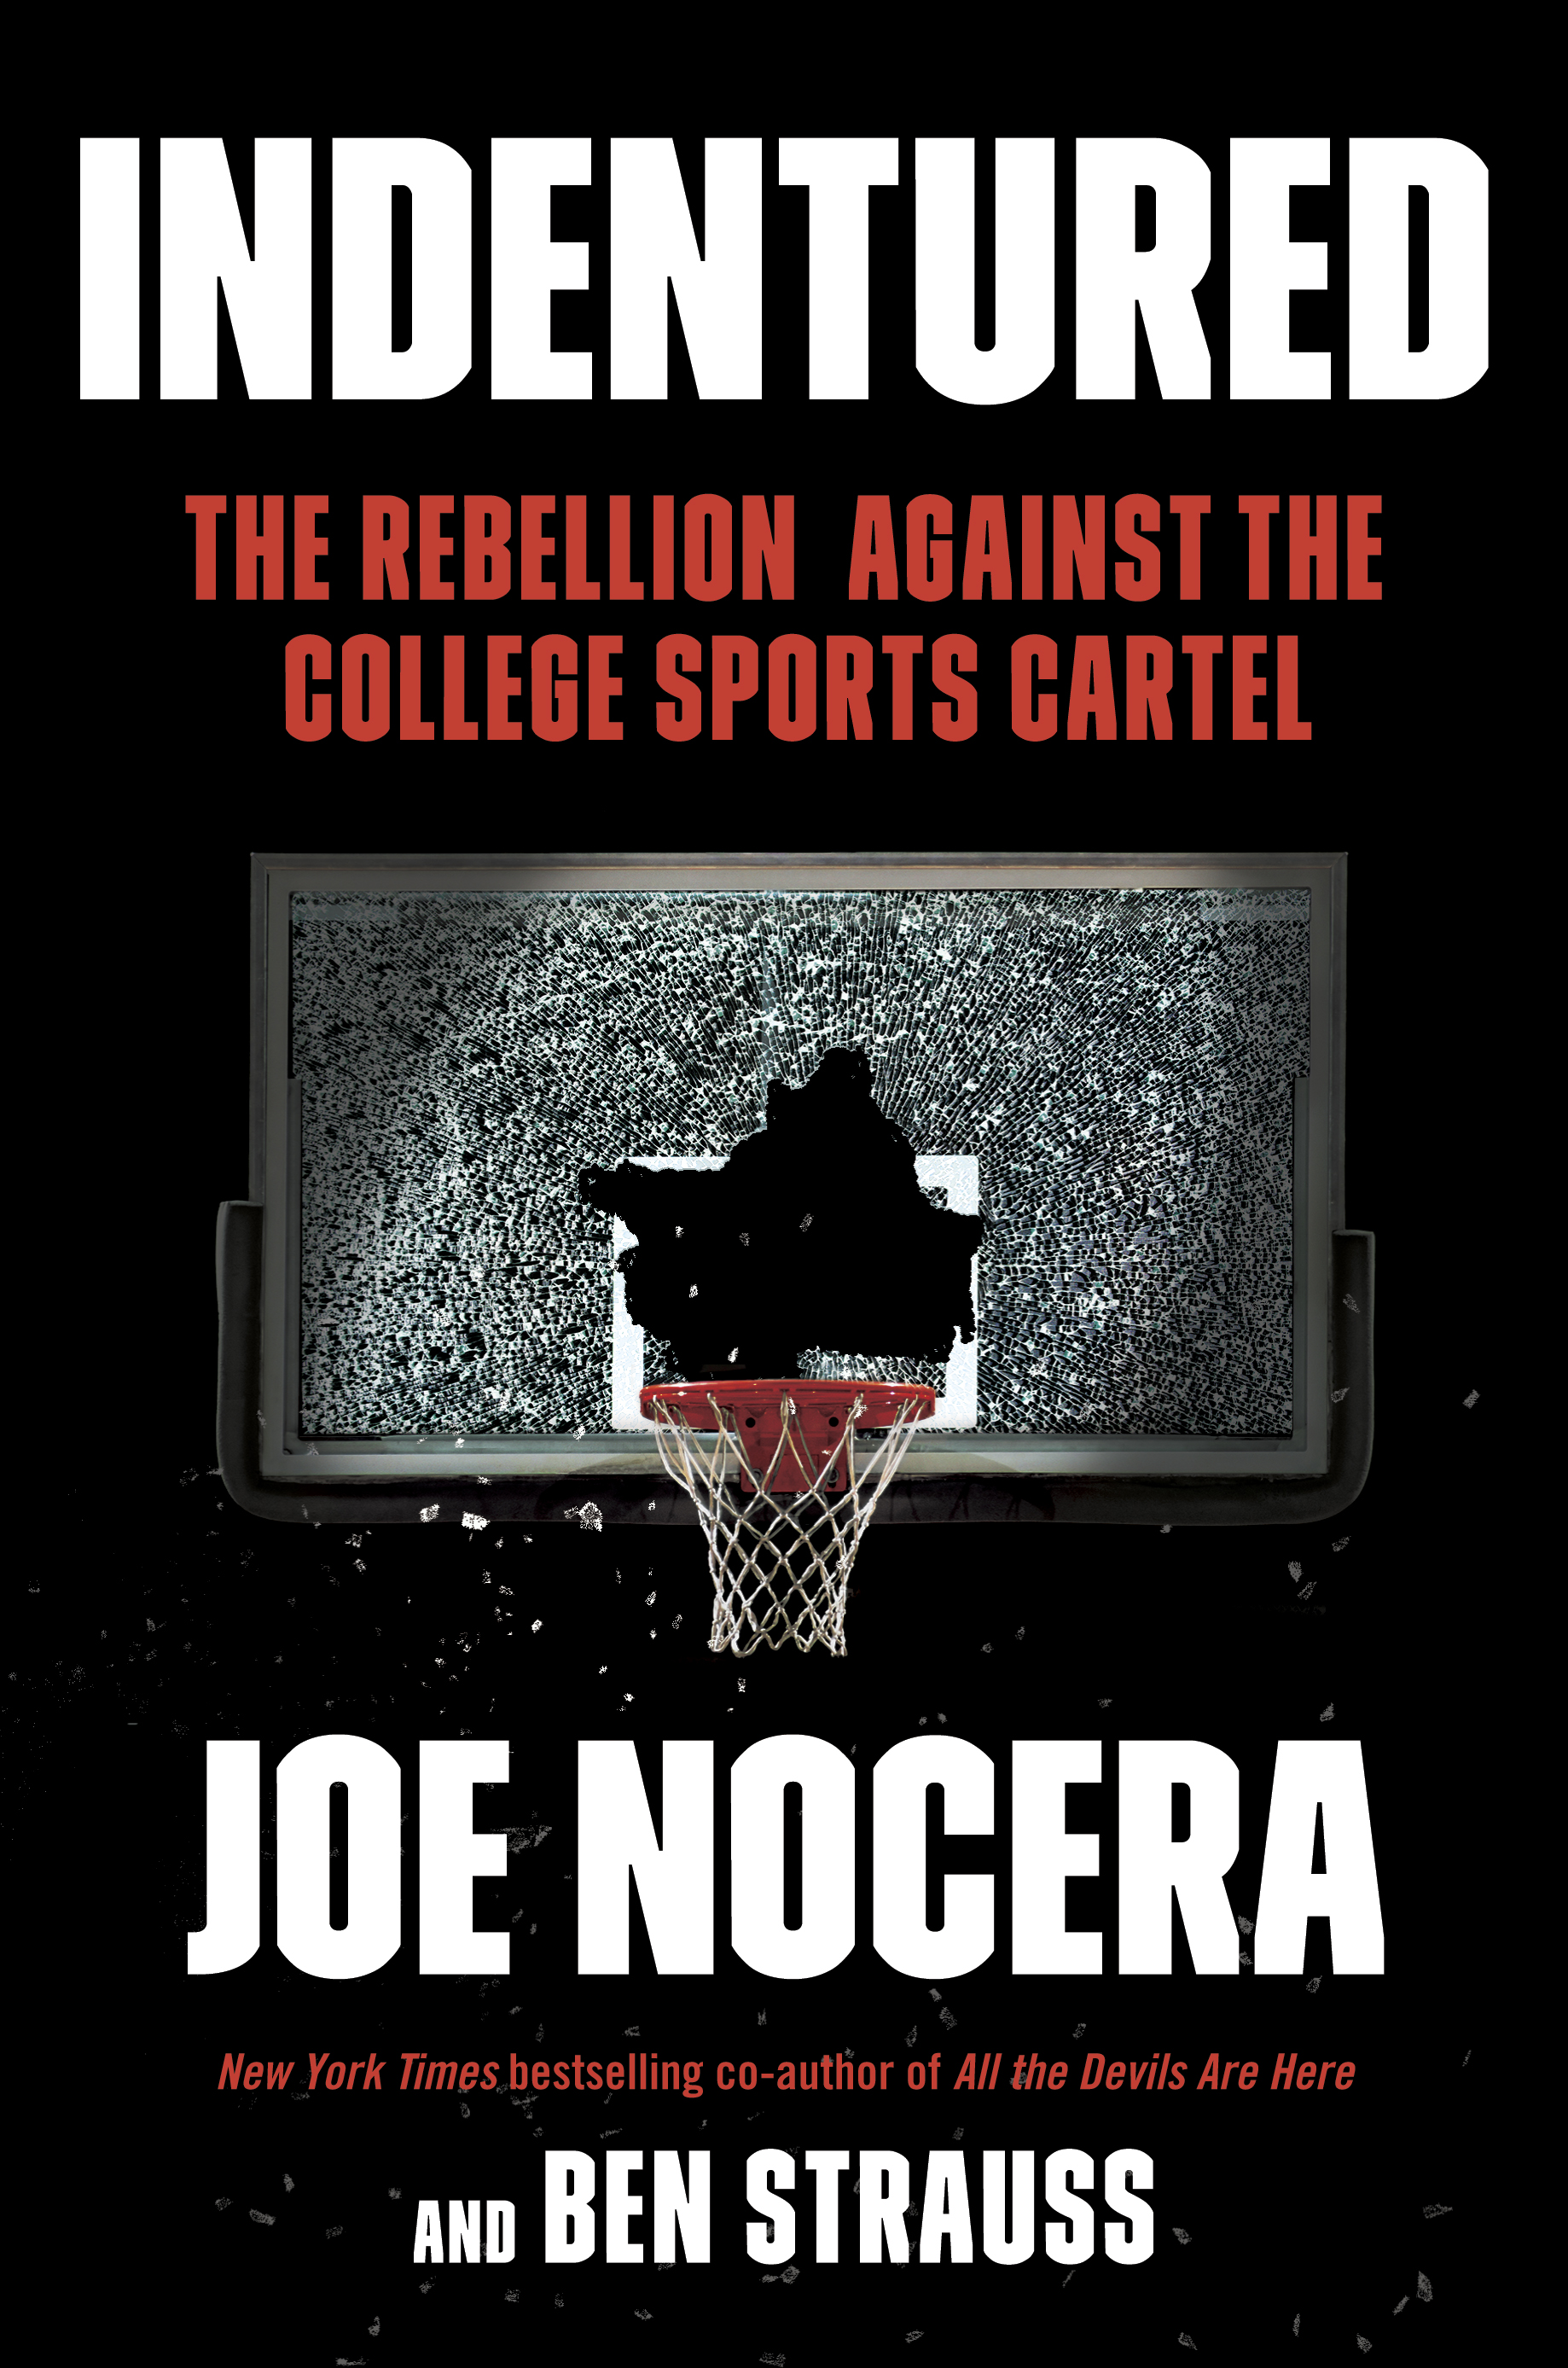 INDENTURED: The Inside Story of the Rebellion Against the NCAA by Joe Nocera and Ben Strauss